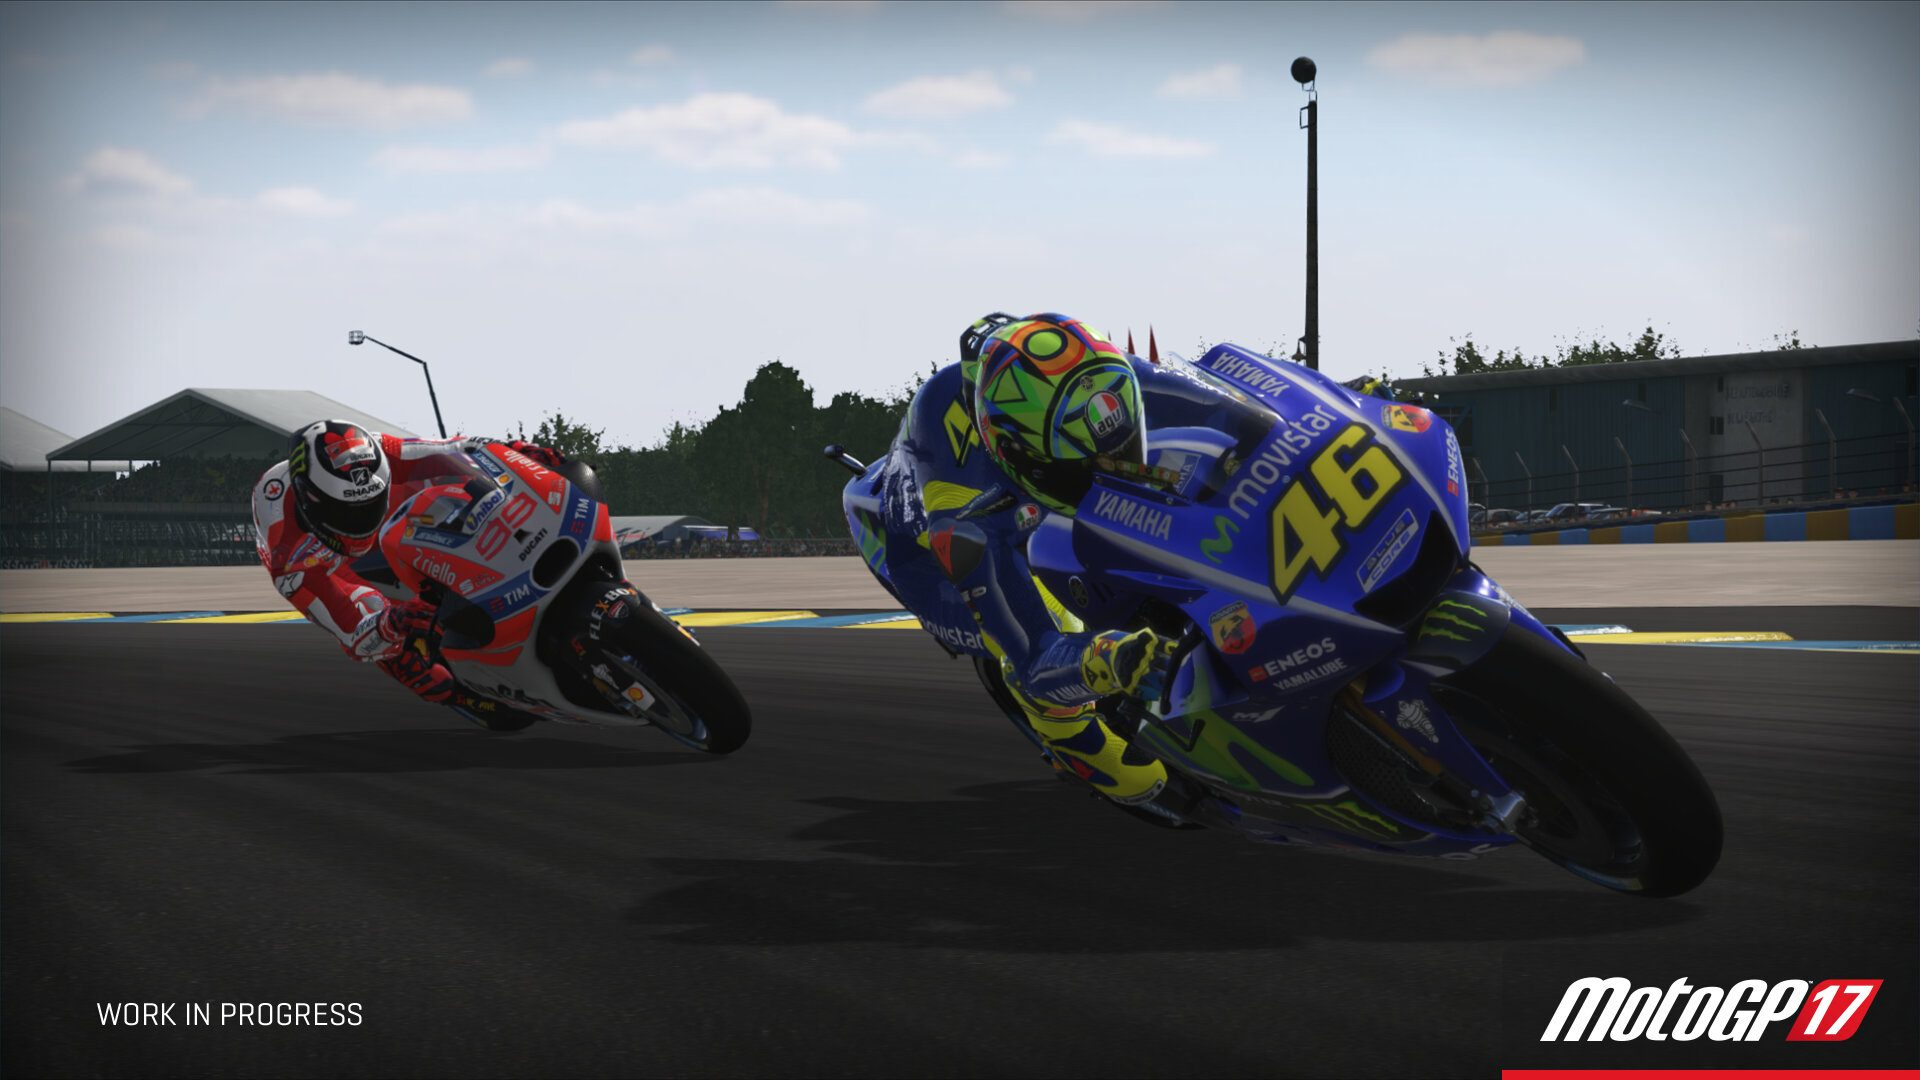 MotoGp 17 - Trailer della stagione 2017 - News Playstation 4, Xbox One | Console-Tribe